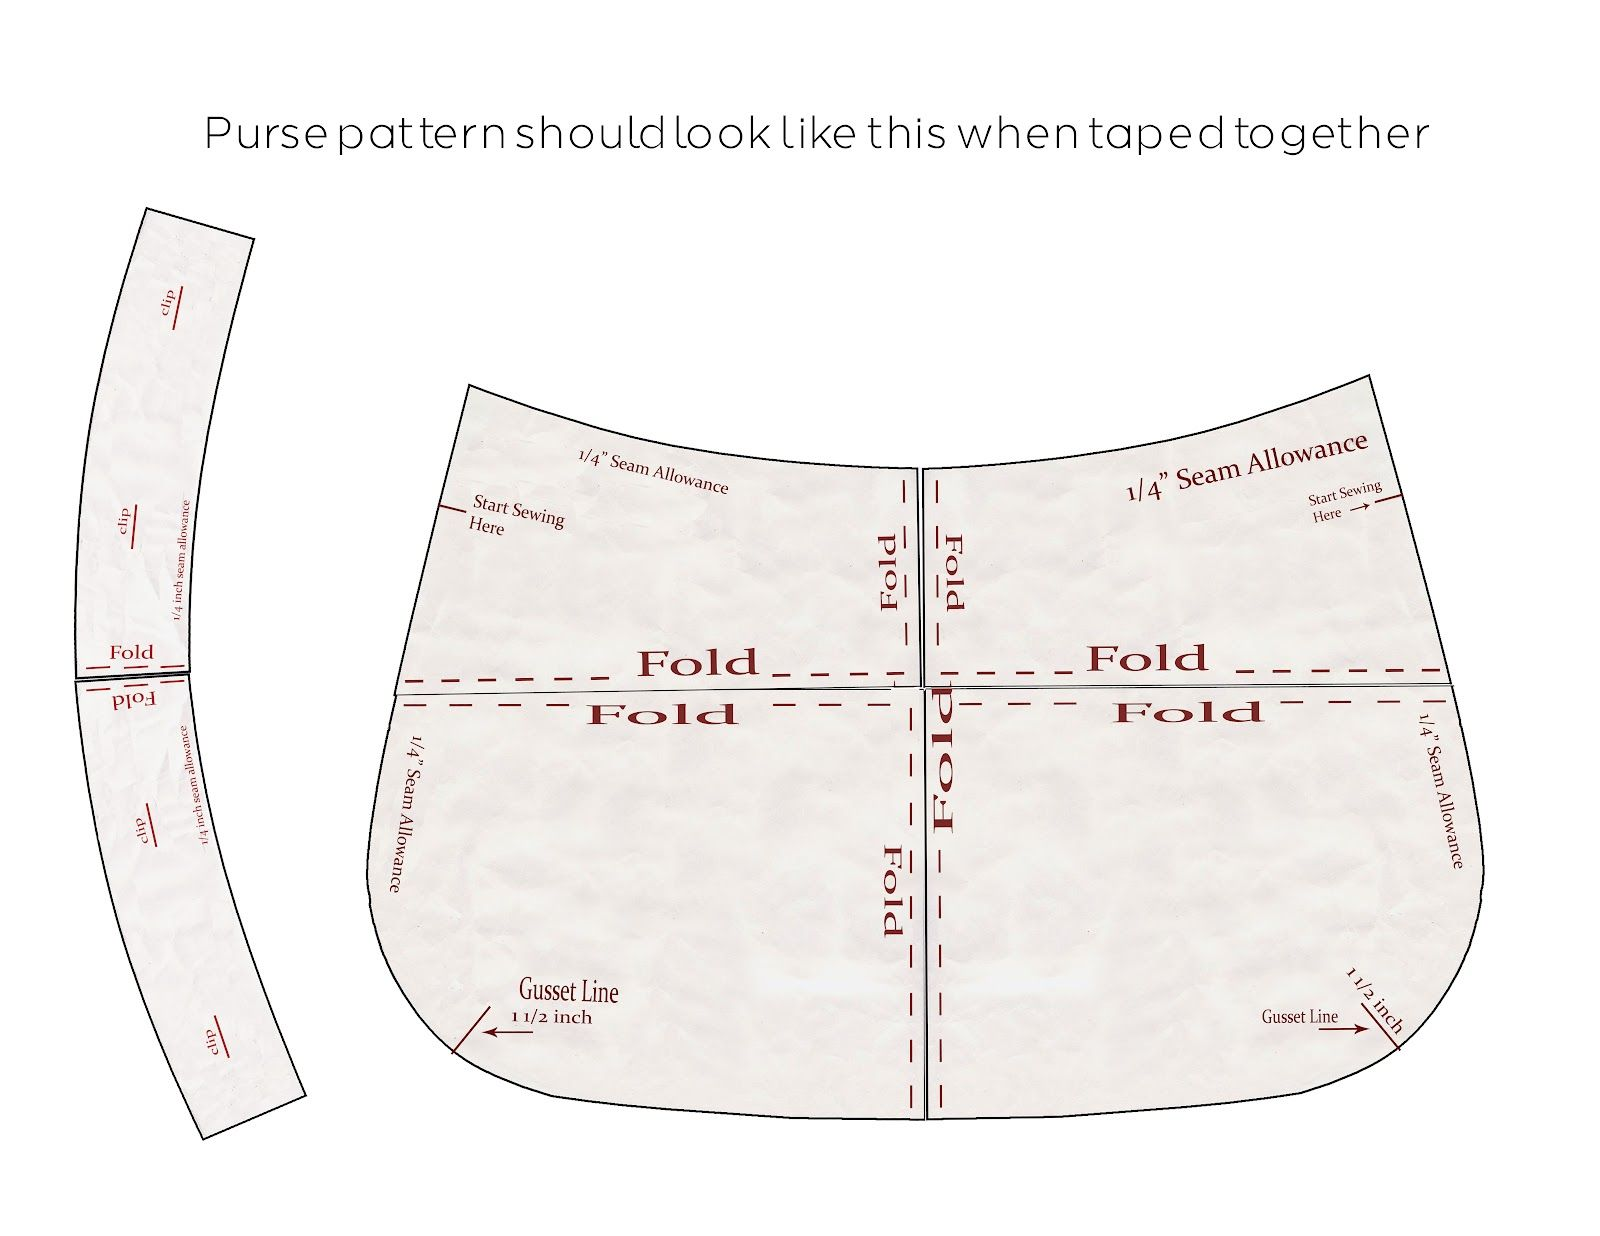 image regarding Handbag Patterns Free Printable named purse layouts print cost-free  down load the practice areas